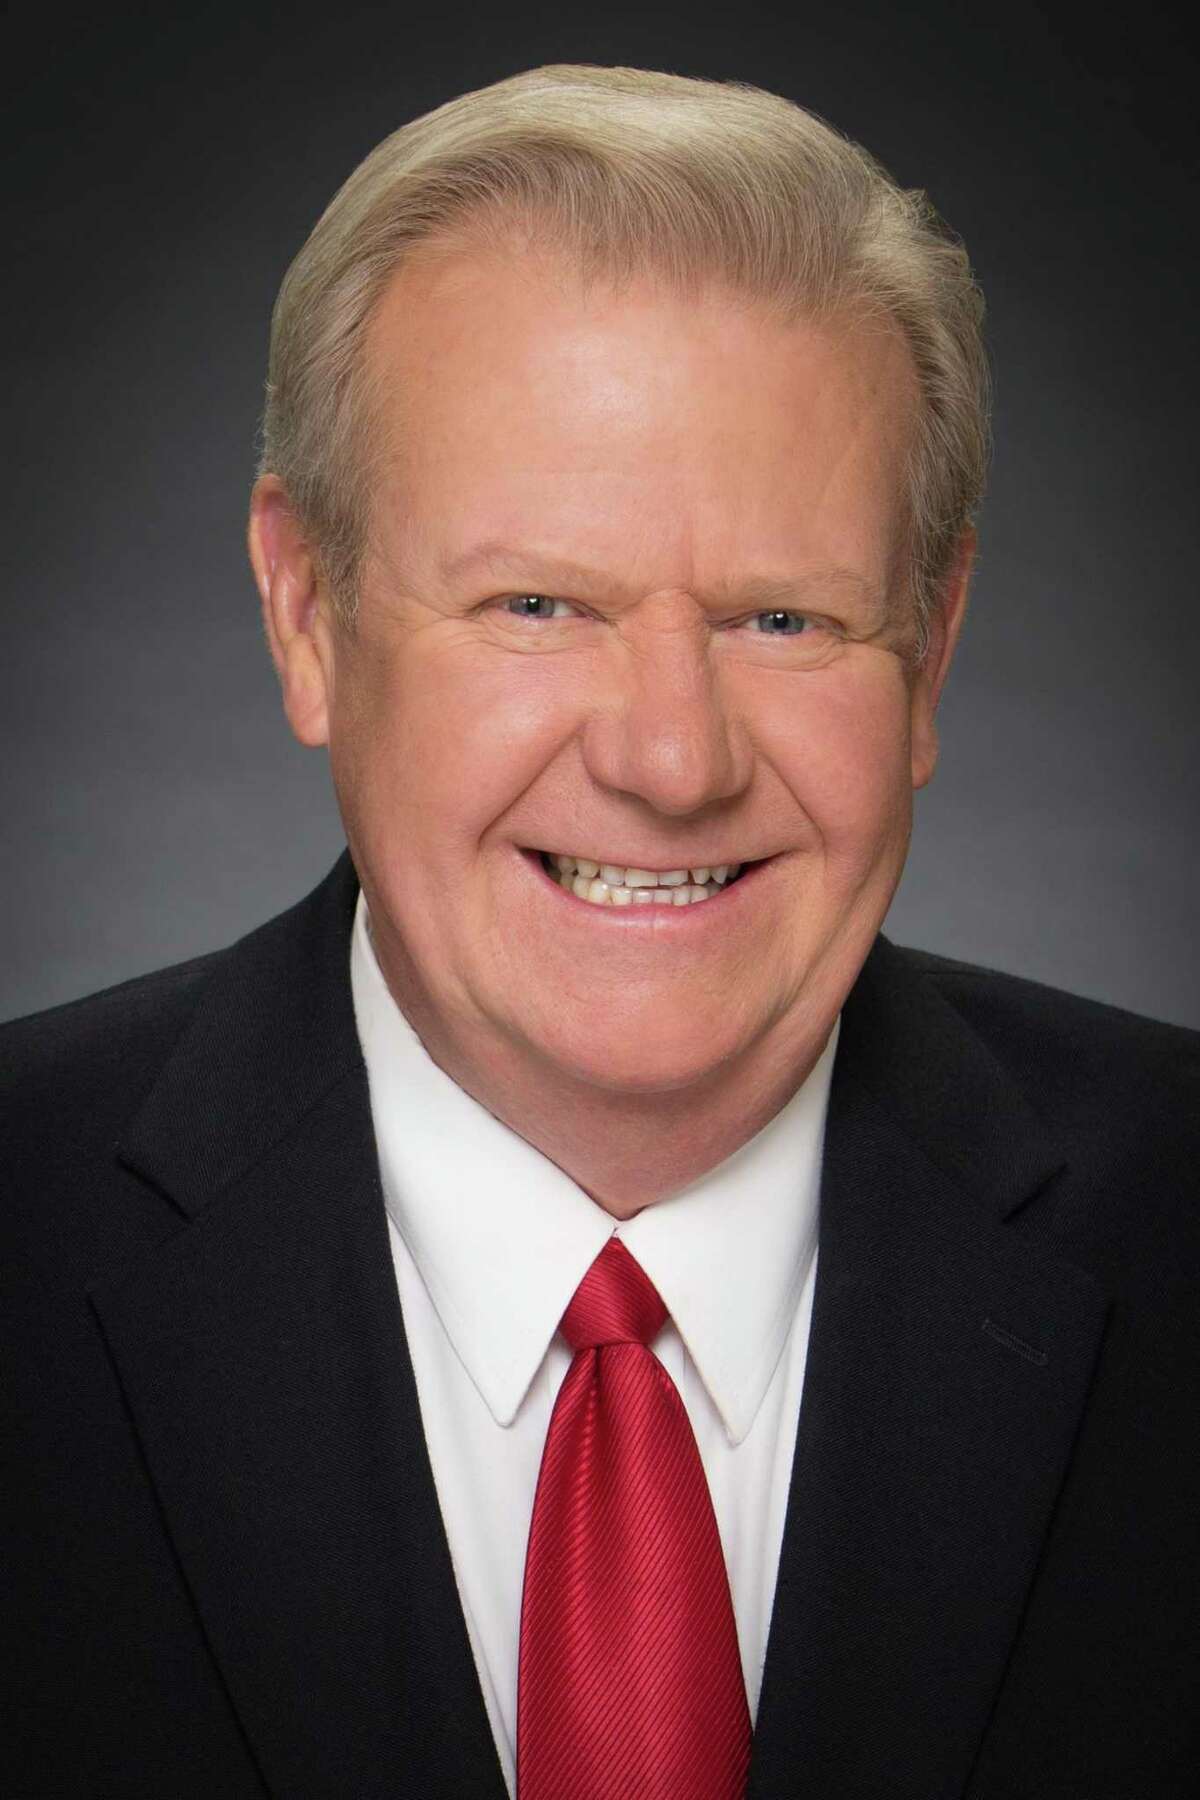 Steve BrowneCheif Meteorologist Steve Browne retired after 26 years at KSAT, giving his last forecast in June.